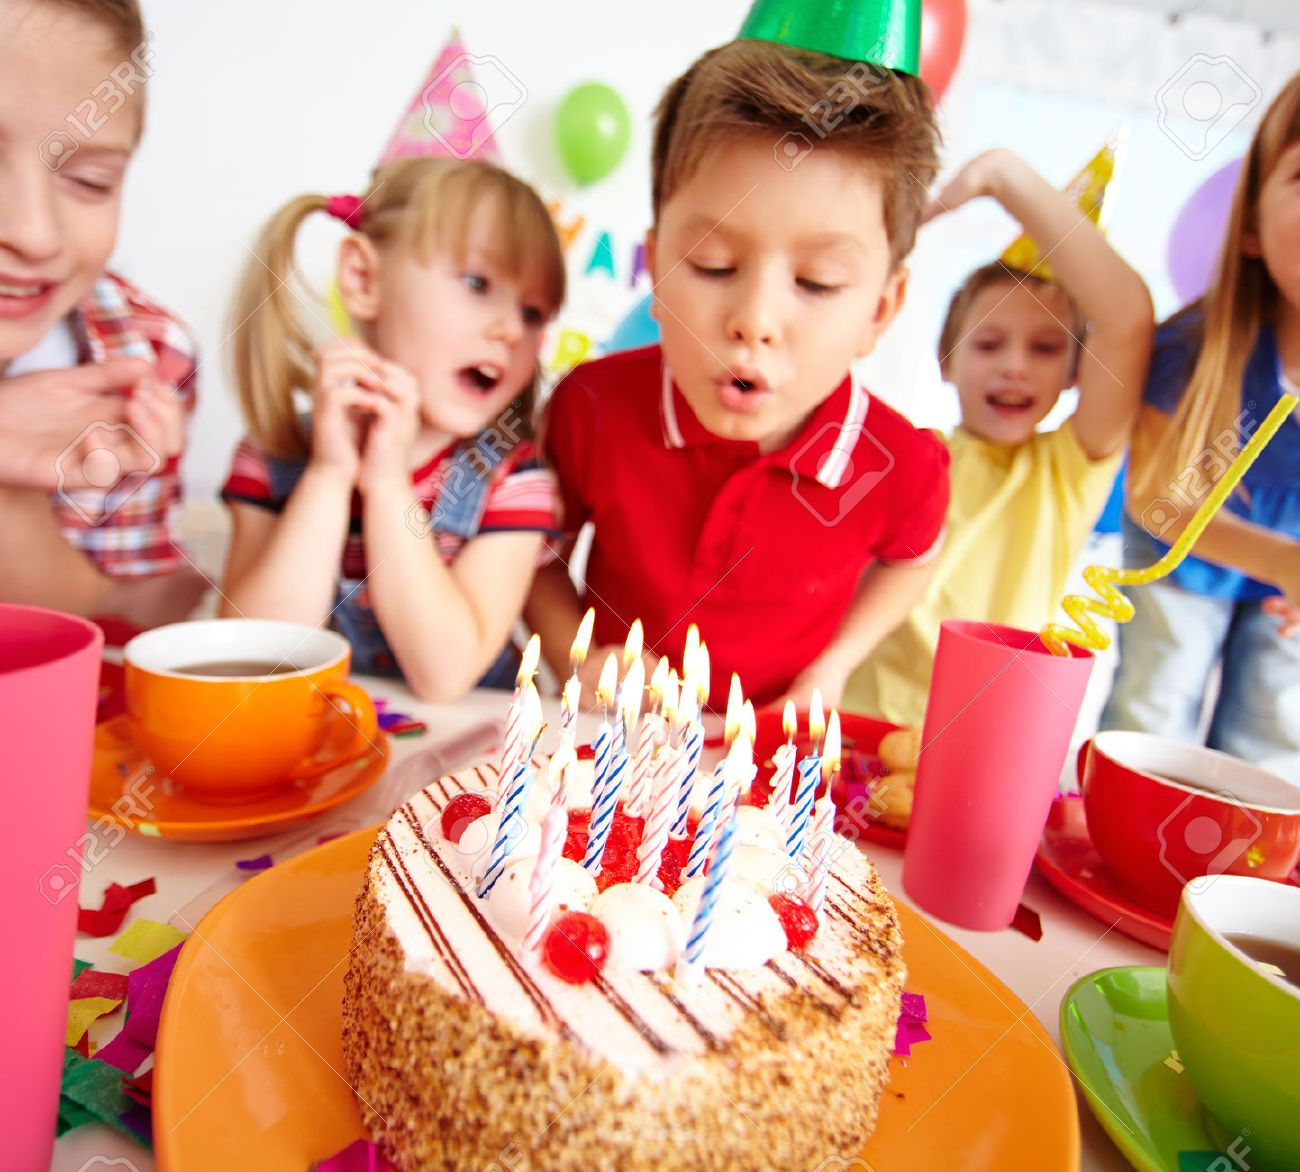 Sensational Group Of Adorable Kids Looking At Birthday Cake With Candles Personalised Birthday Cards Sponlily Jamesorg